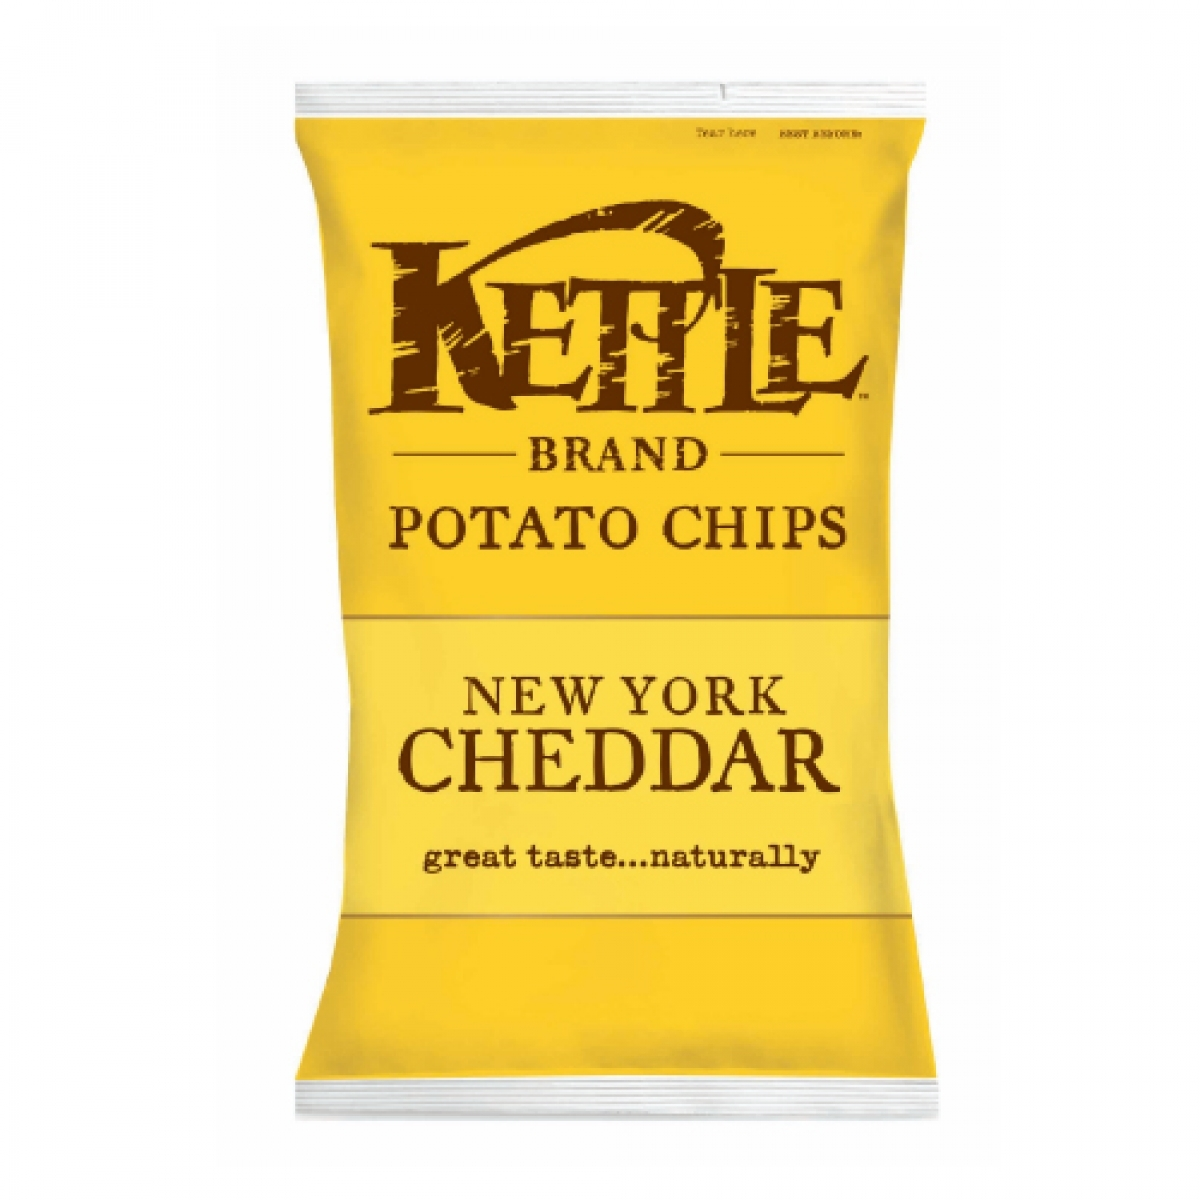 Kettle Brand All Natural Potato Chips – New York Cheddar (Regular 5oz)